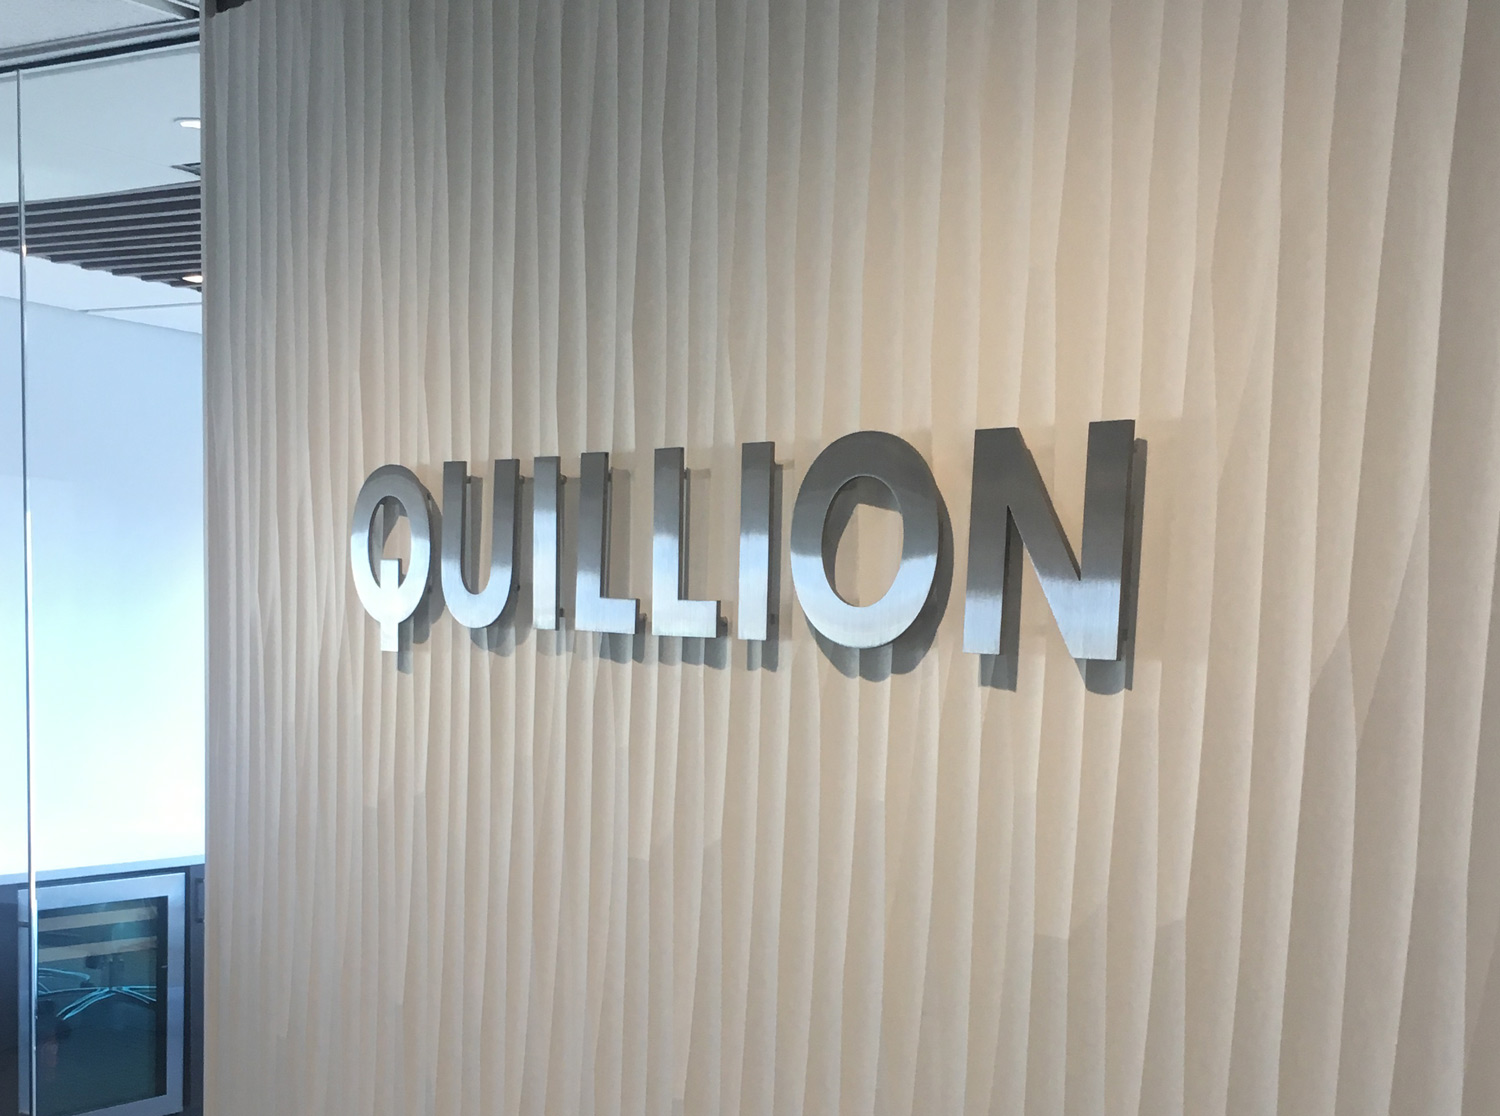 Stainless Steel Letters for Quillion Wealth Management in Baltimore Maryland